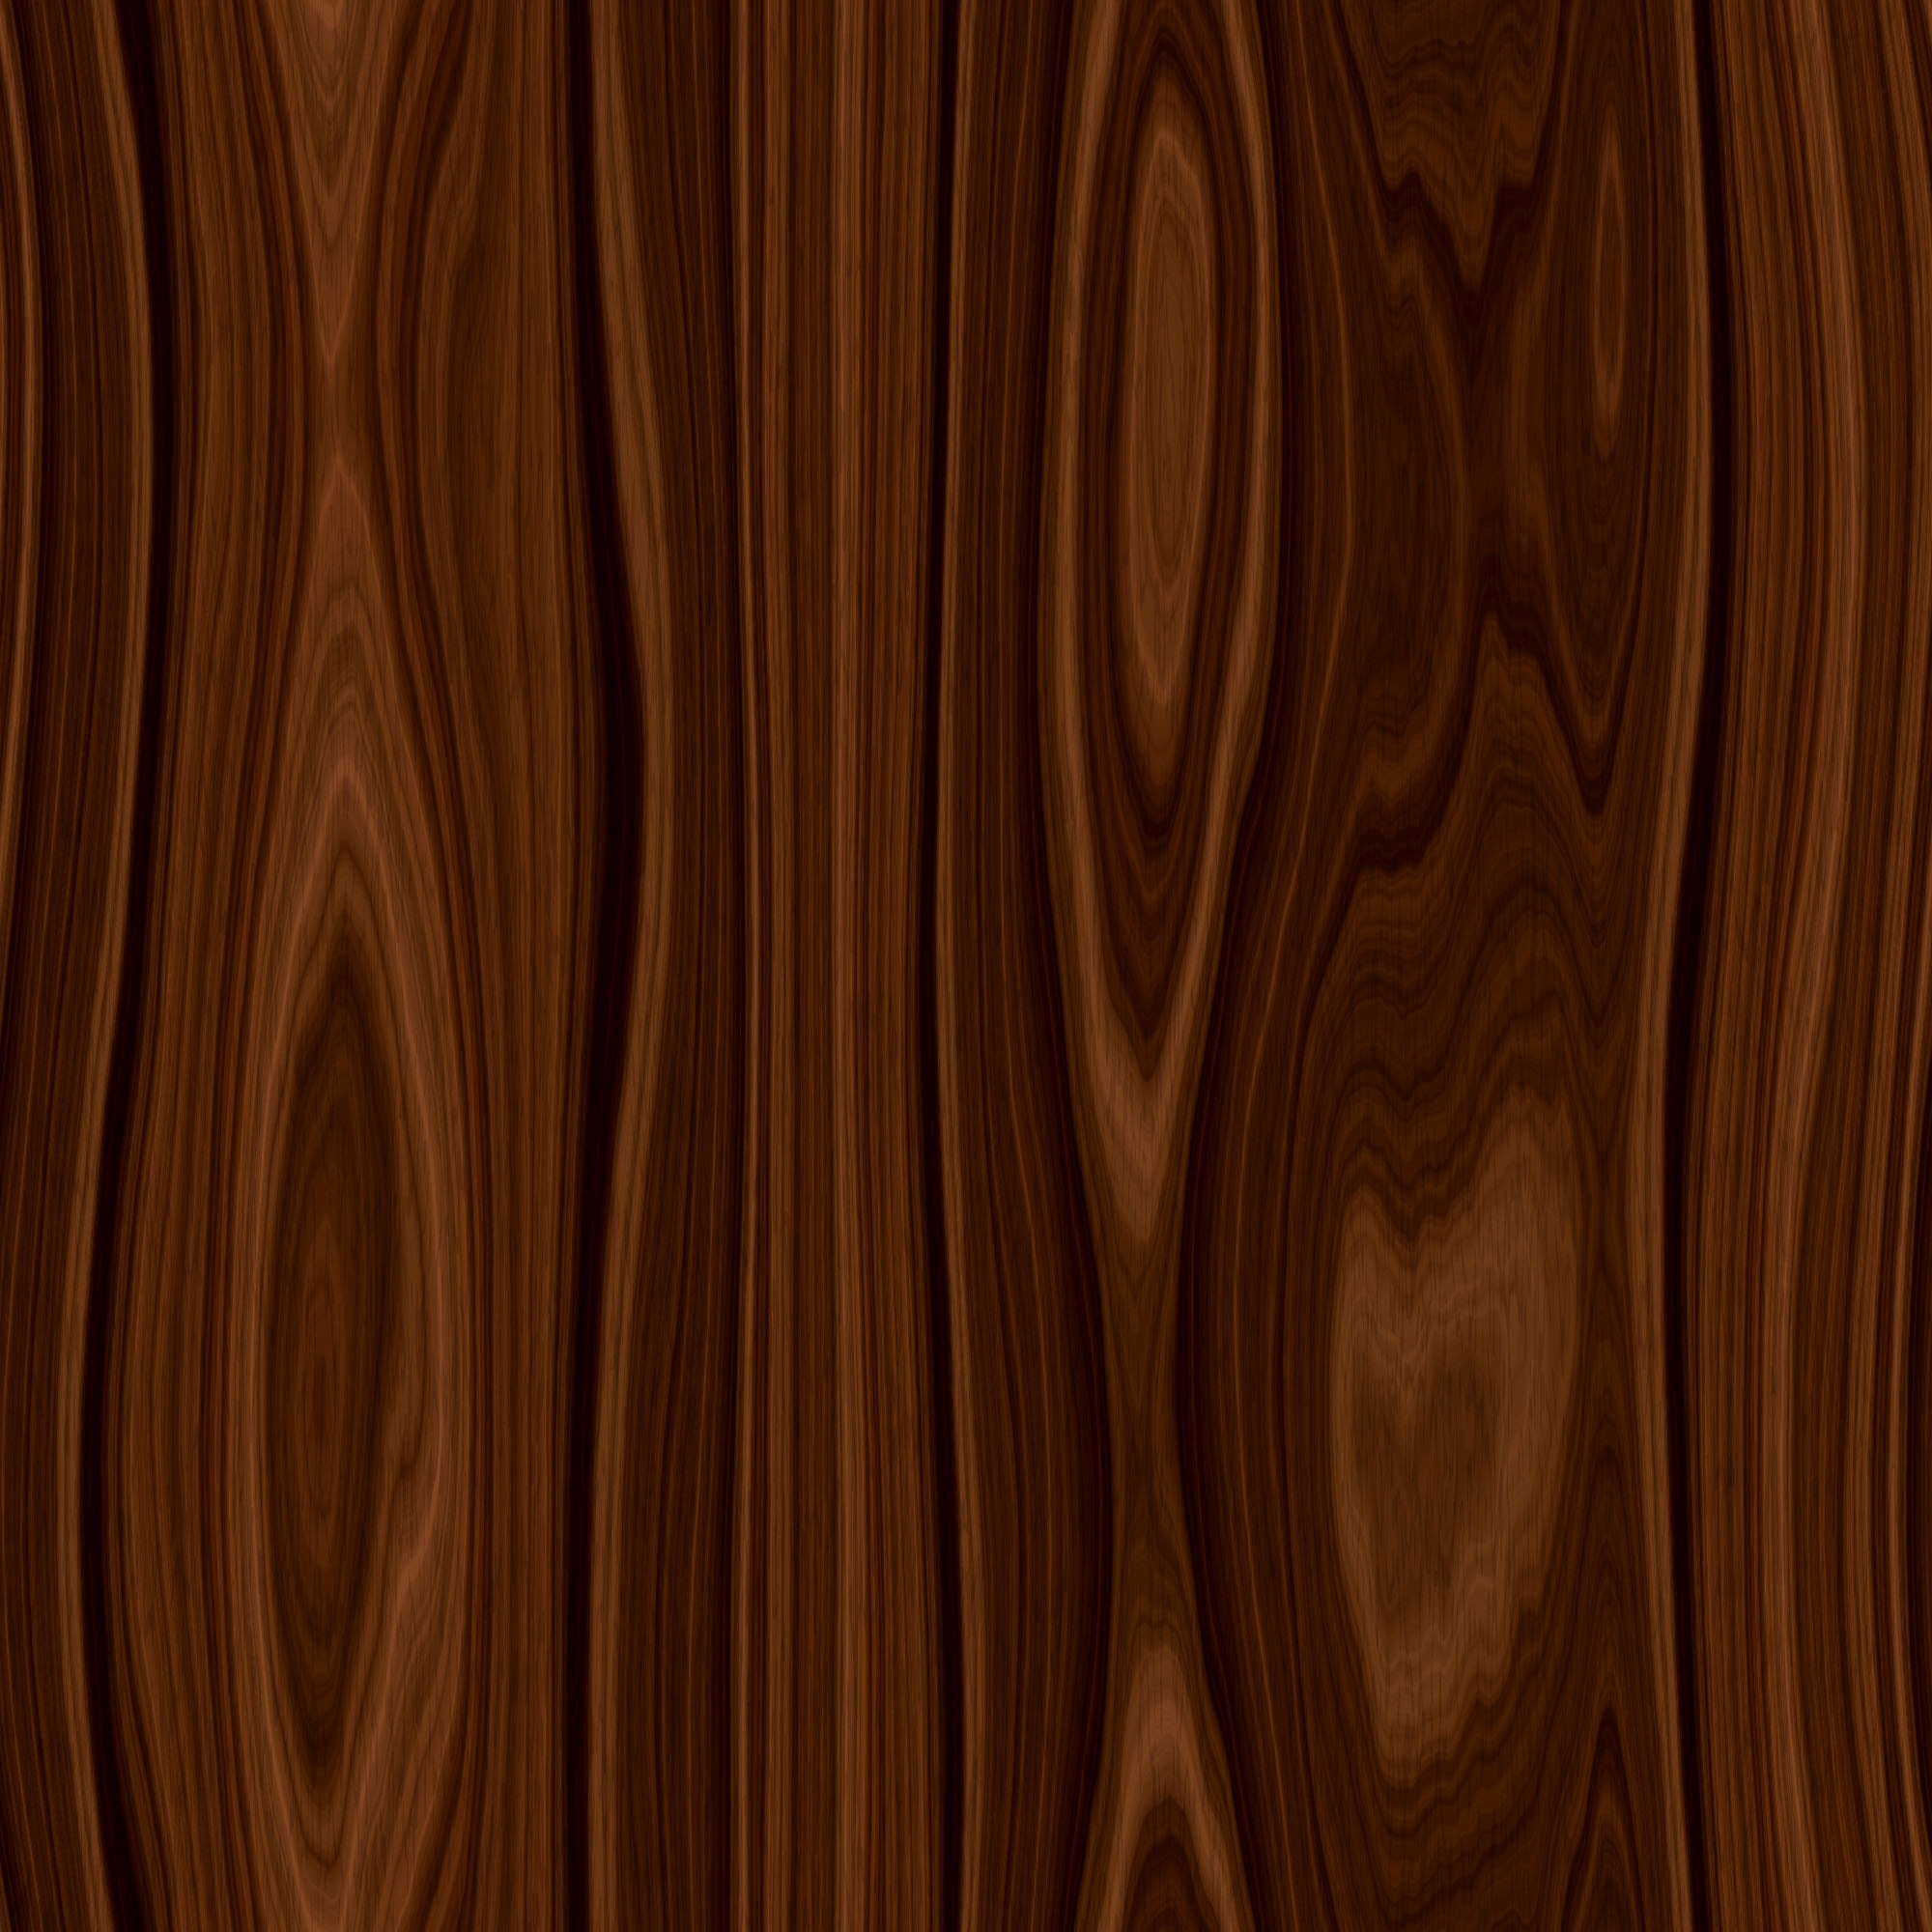 Dark Seamless Wood Background